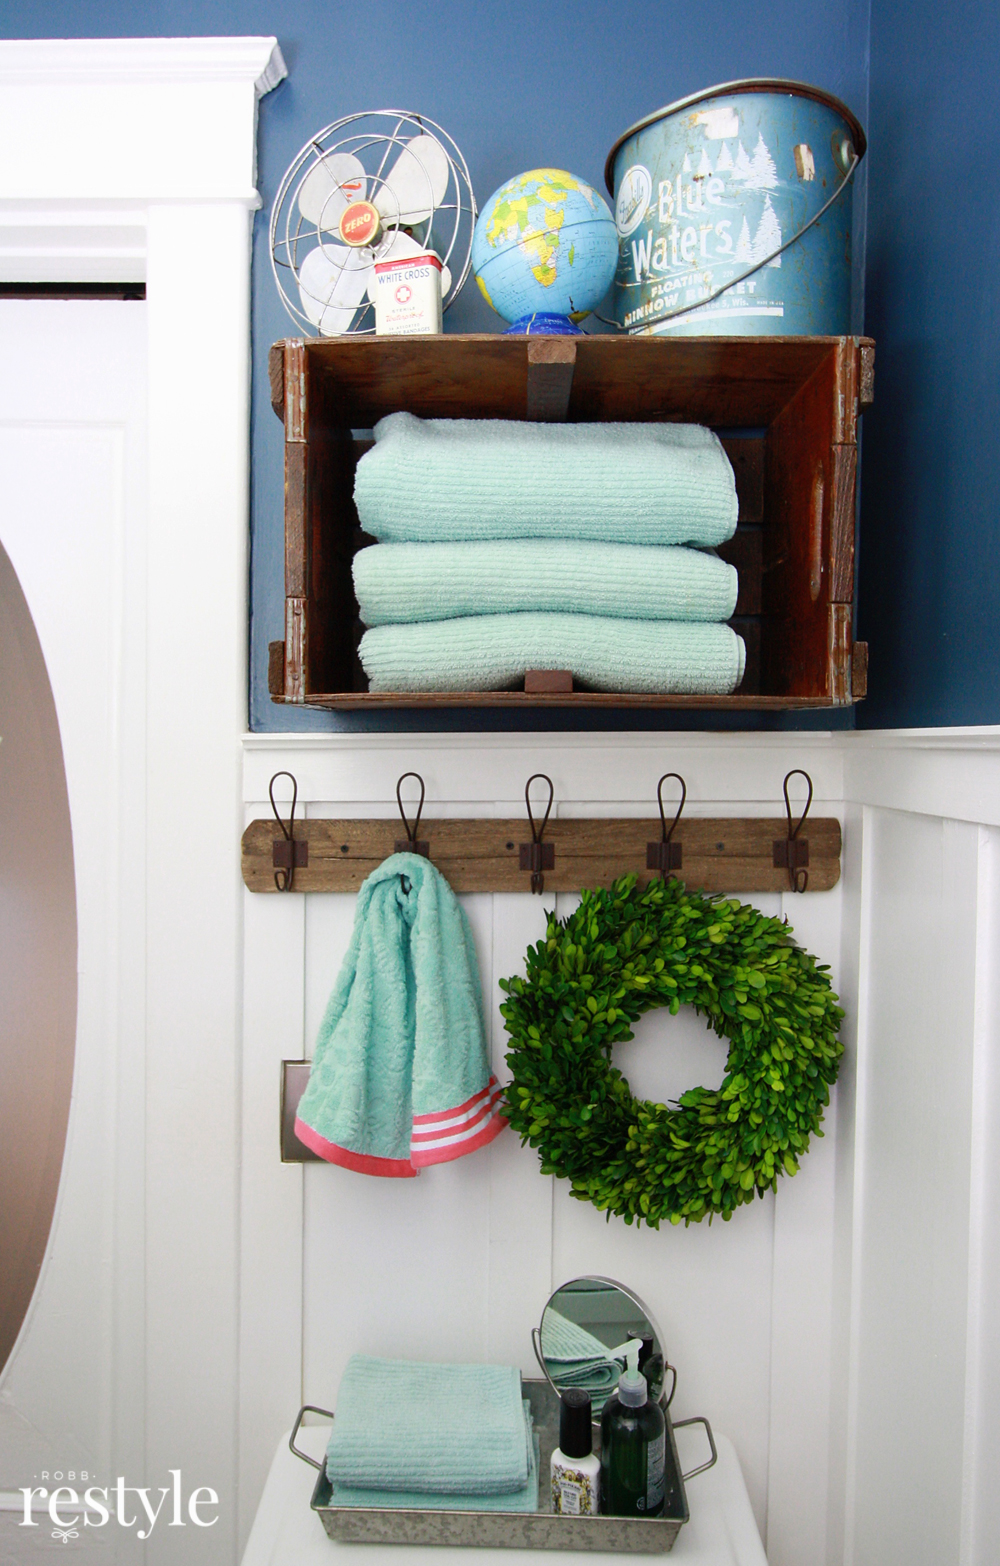 Turn a vintage crate on its side to store bathroom towels.